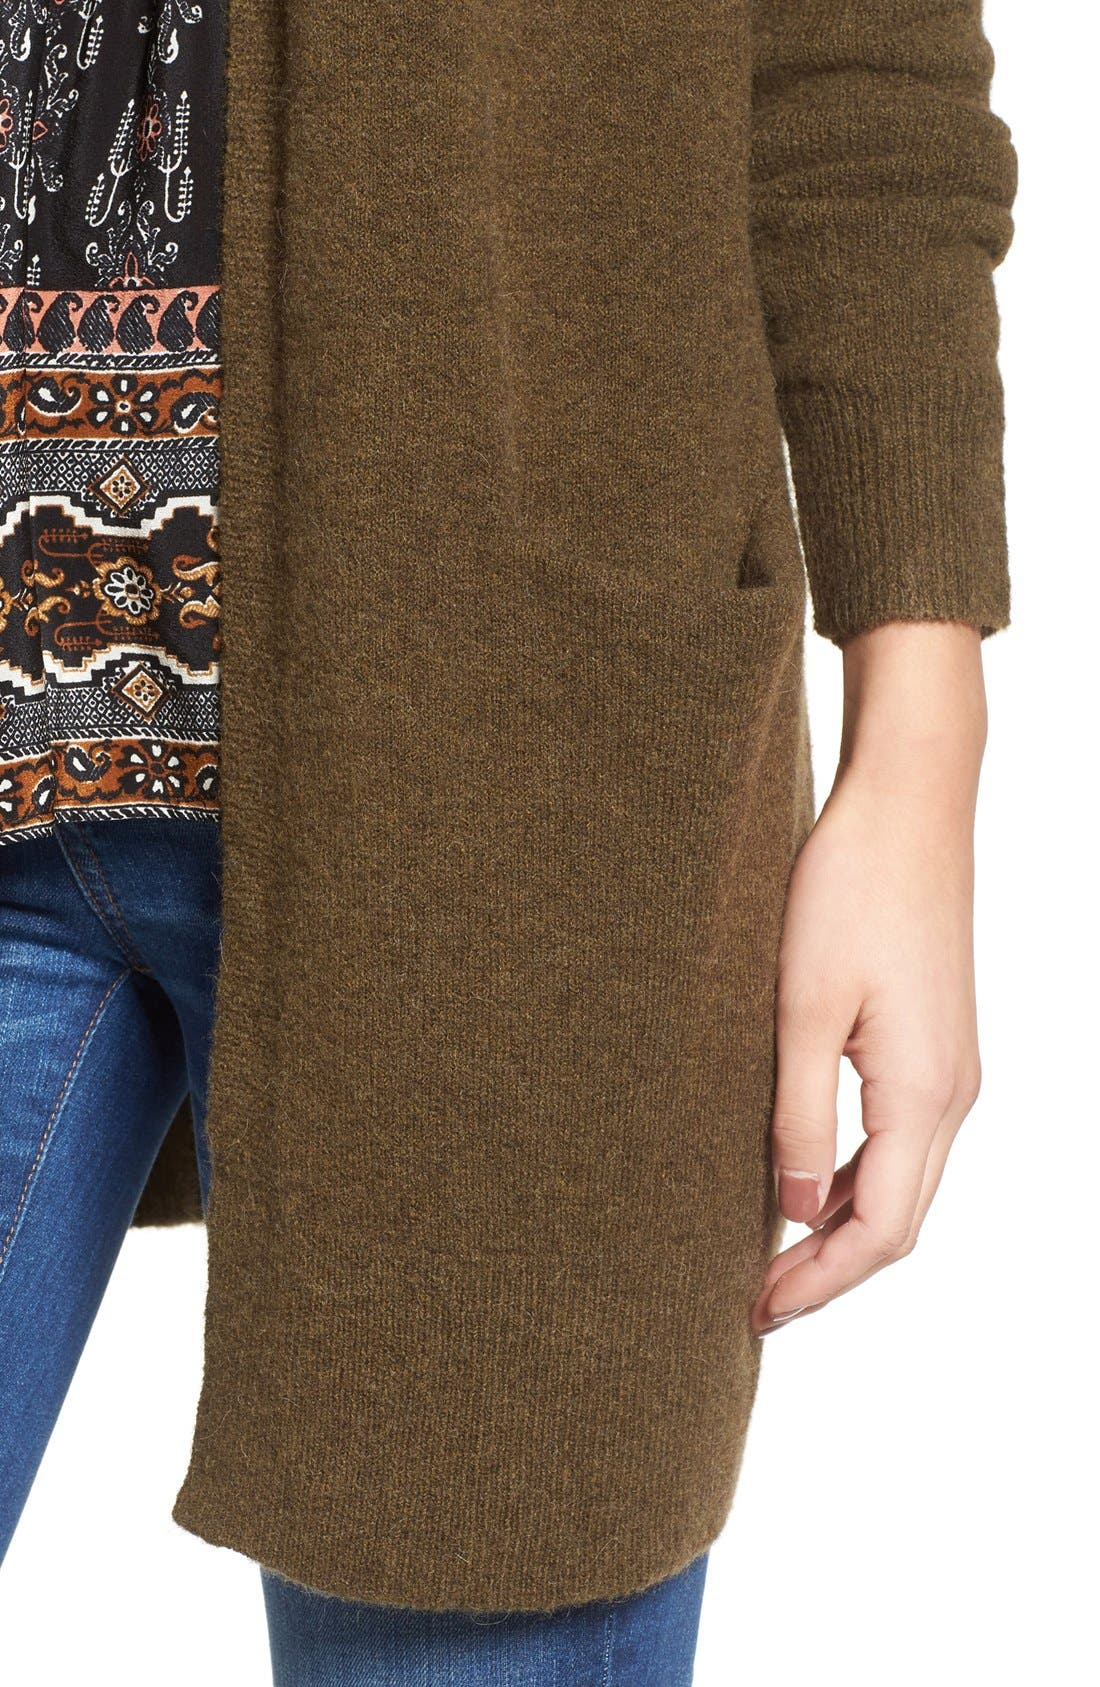 Ryder Cardigan,                             Alternate thumbnail 11, color,                             301